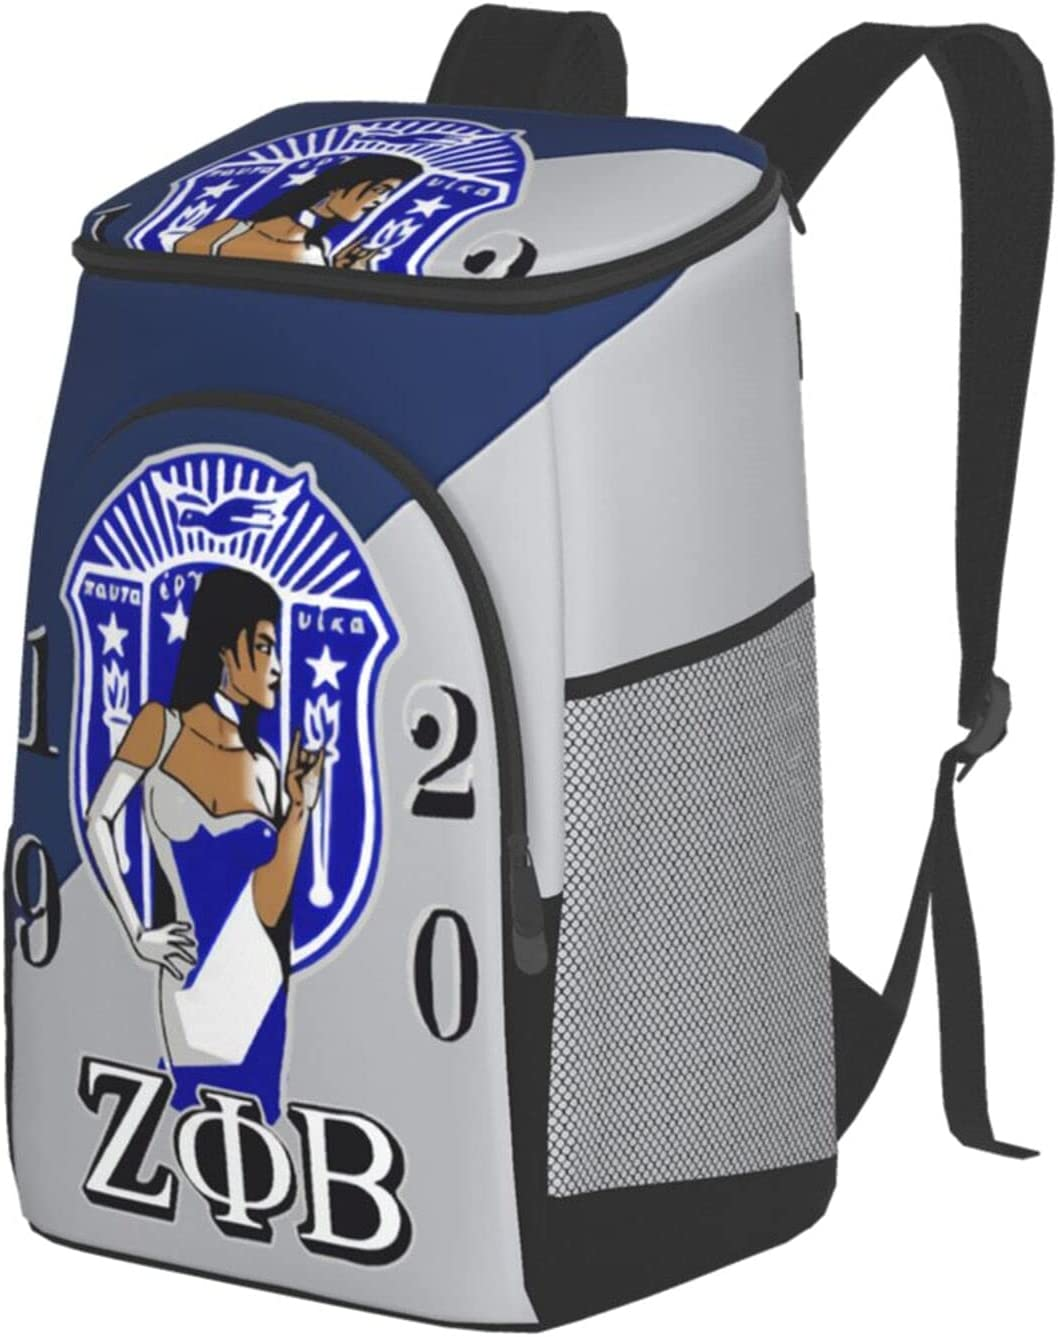 Zeta Phi Betalargethermal Insulated Fort Worth Mall Lunch Bargain - Bag Leakpro Reusable